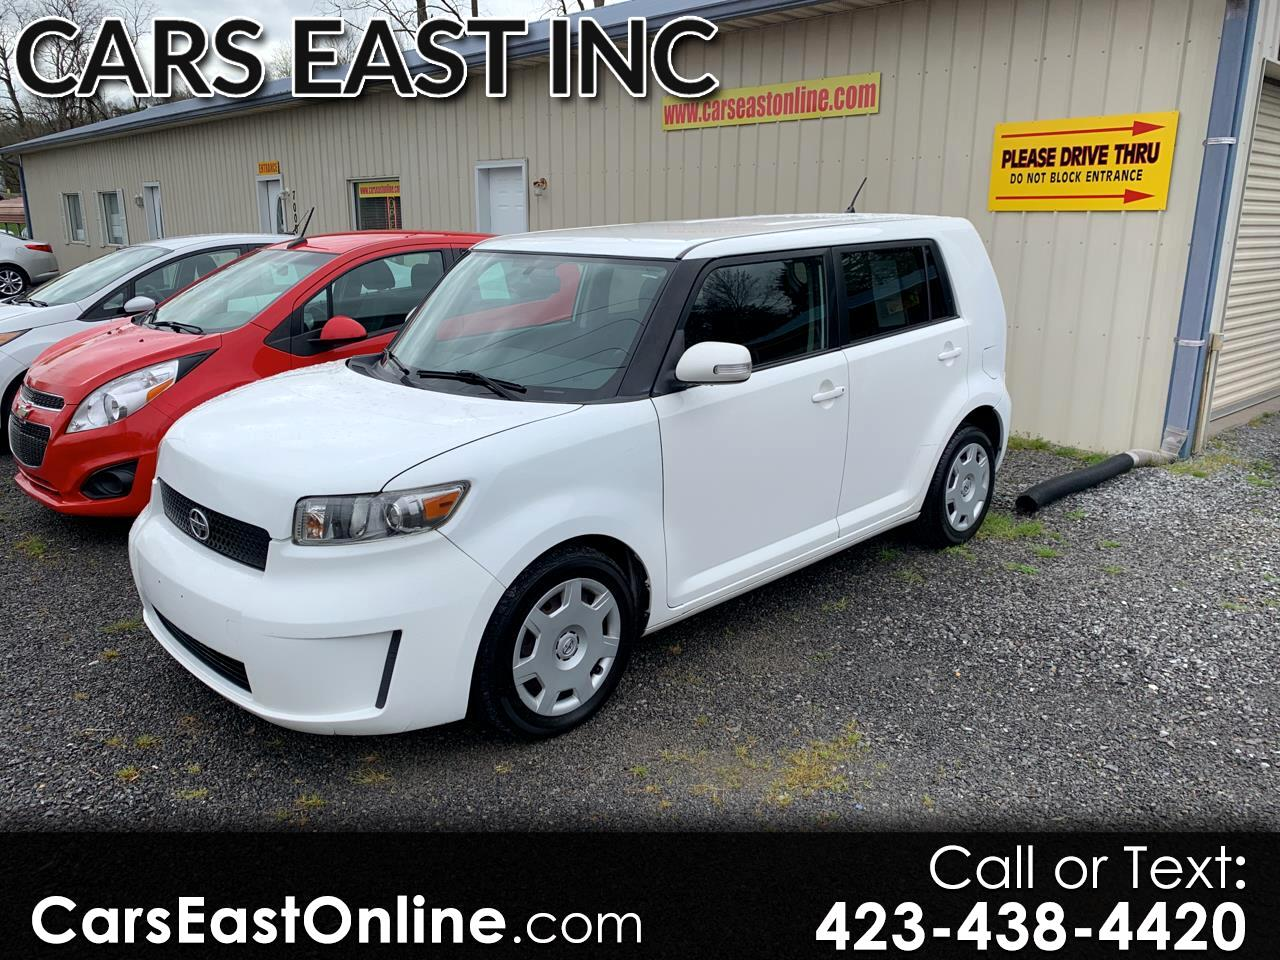 2009 Scion xB 5dr Wgn Auto (Natl)